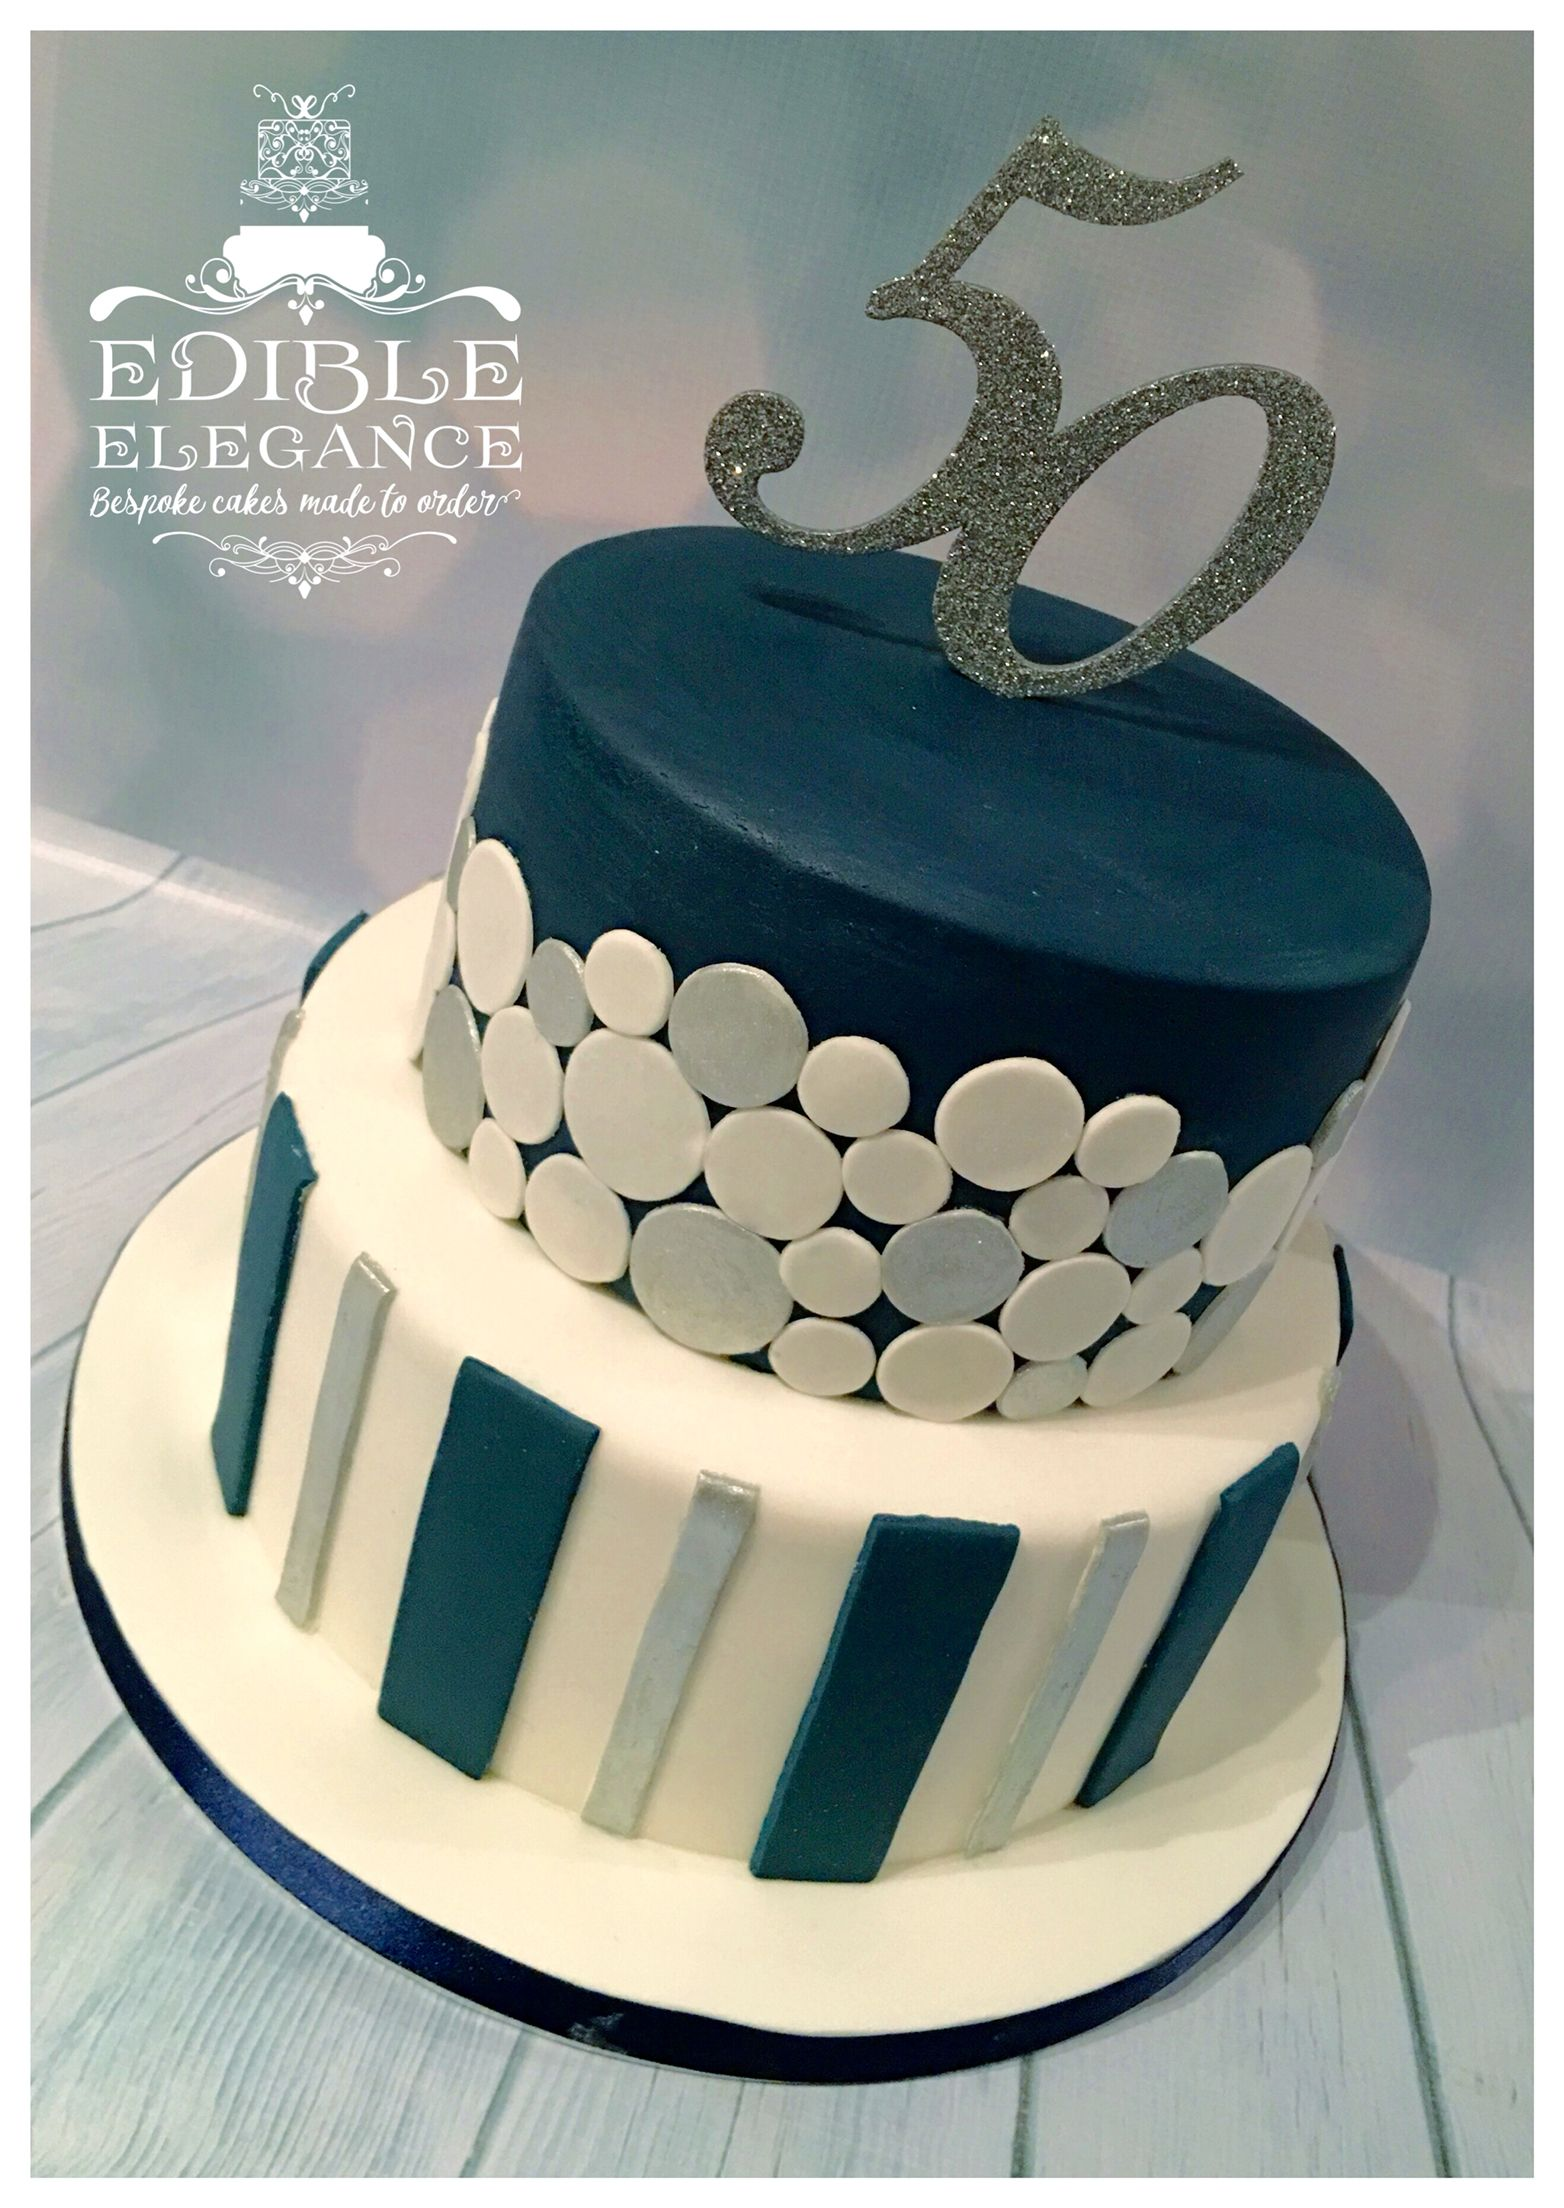 50th Birthday Cake Contemporary Design In Masculine Blue White And